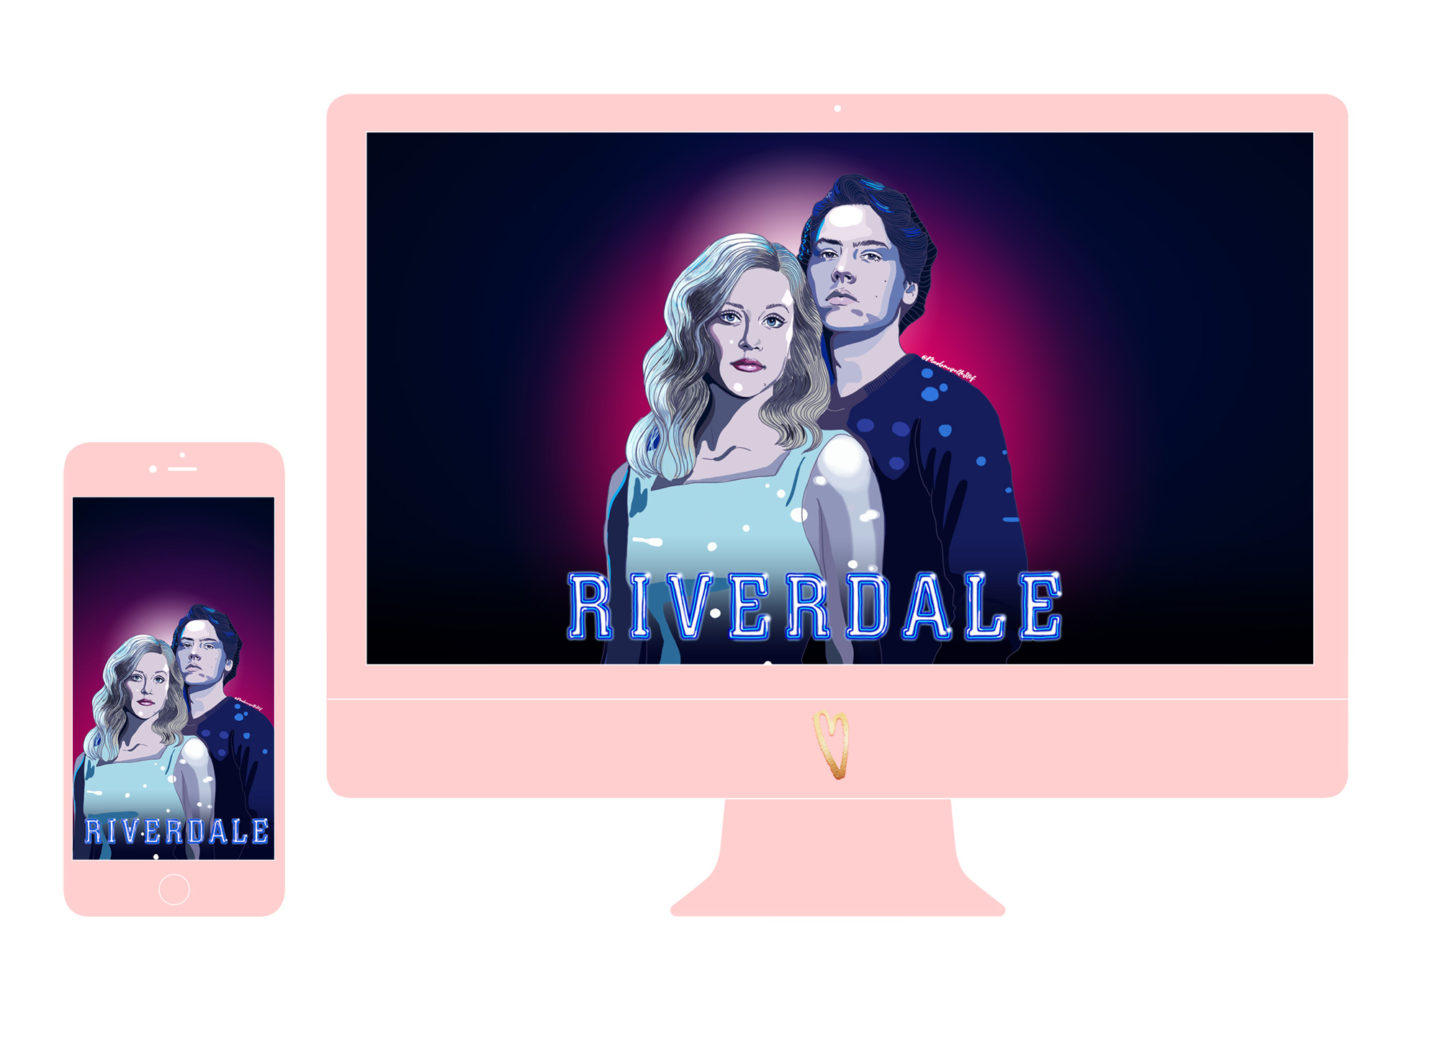 Wallpapers : Fond d'écran Riverdale